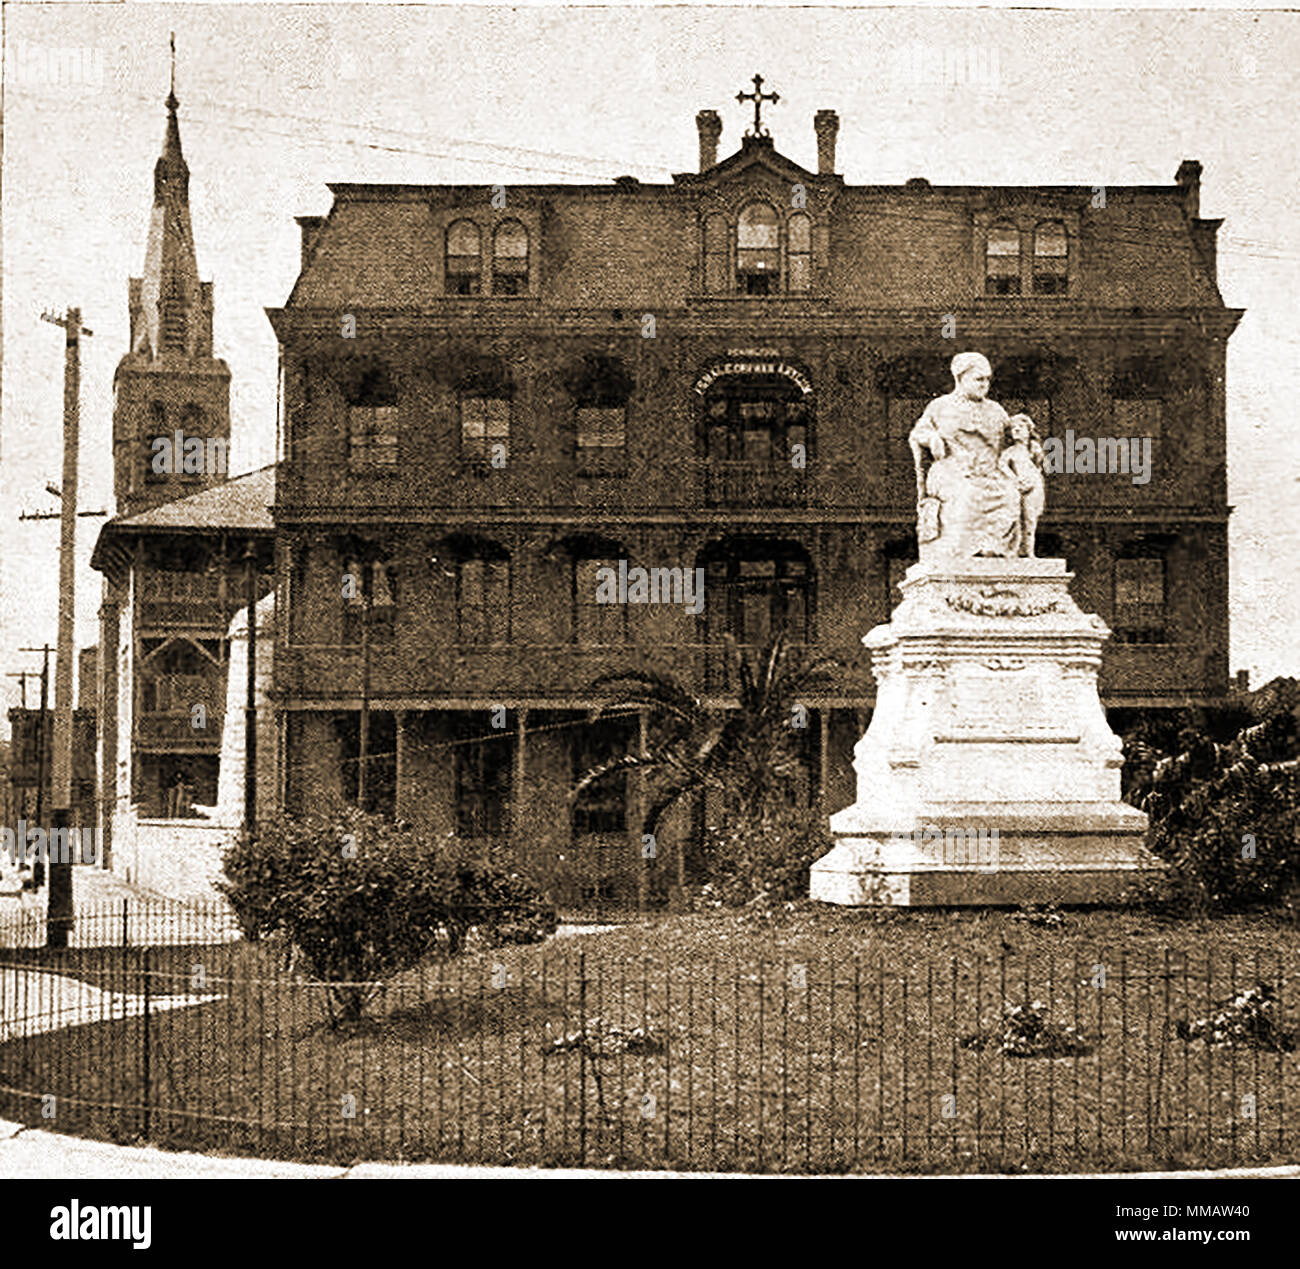 A 1914 photograph of the statue of Margaret Haughery nee Gaffney or Goffney  'New Orleans Margaret' - A philanthropist born Ireland 1814. When widowed in the USA  used the proceeds from and the products of her dairy and bakery to provide for people in need during Yellow Fever epidemics and supported orphanages - 1st woman in America to be commemorated by statue and known as 'The Bread Woman of New Orleans2 - Stock Image